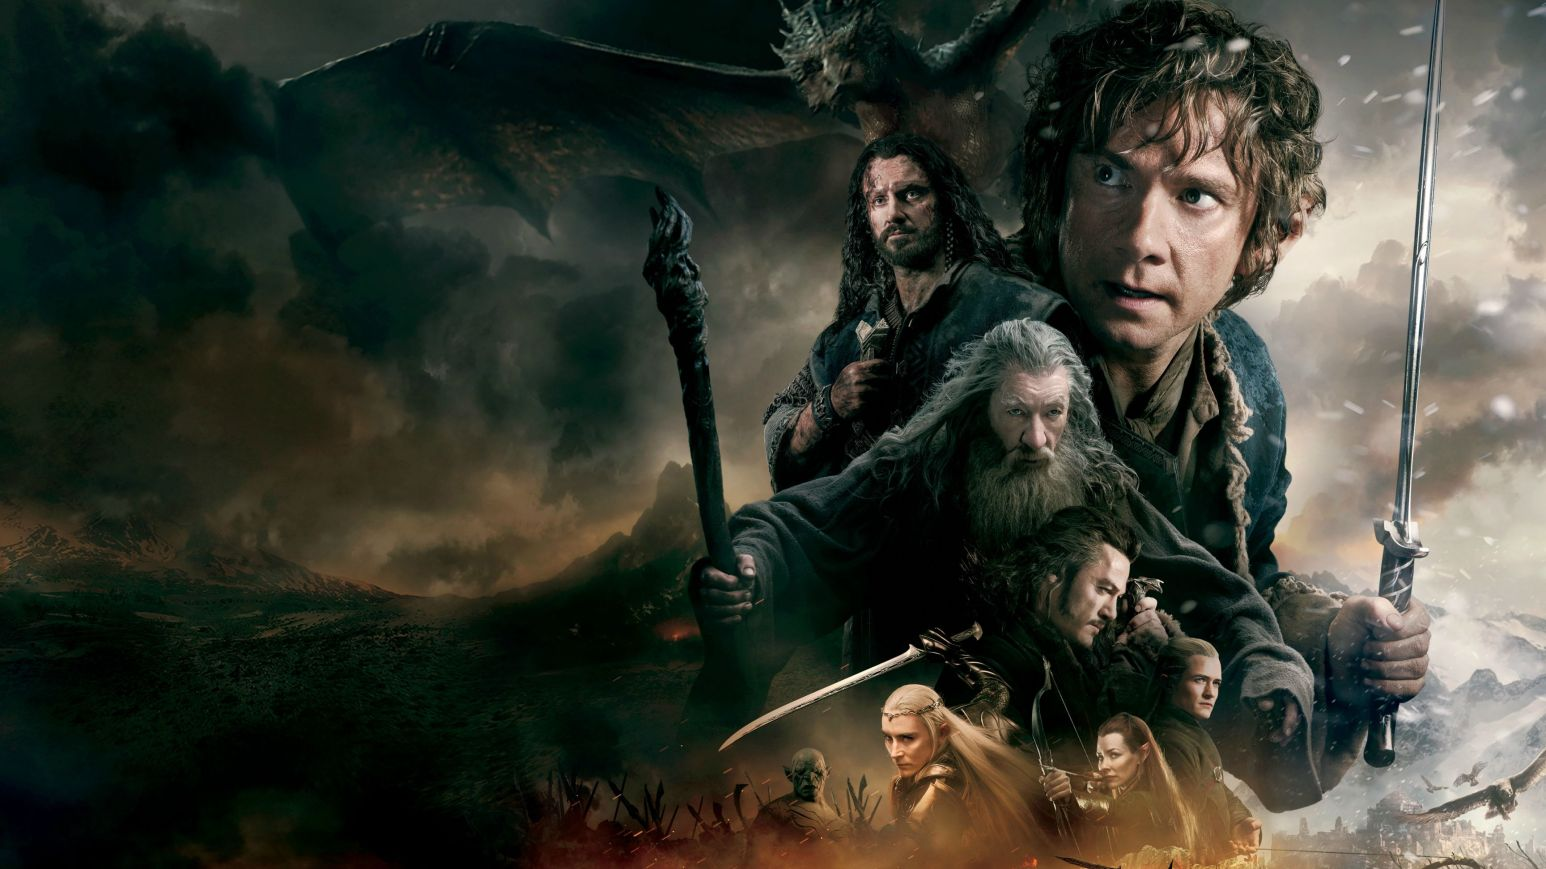 The lord of the Hobbits